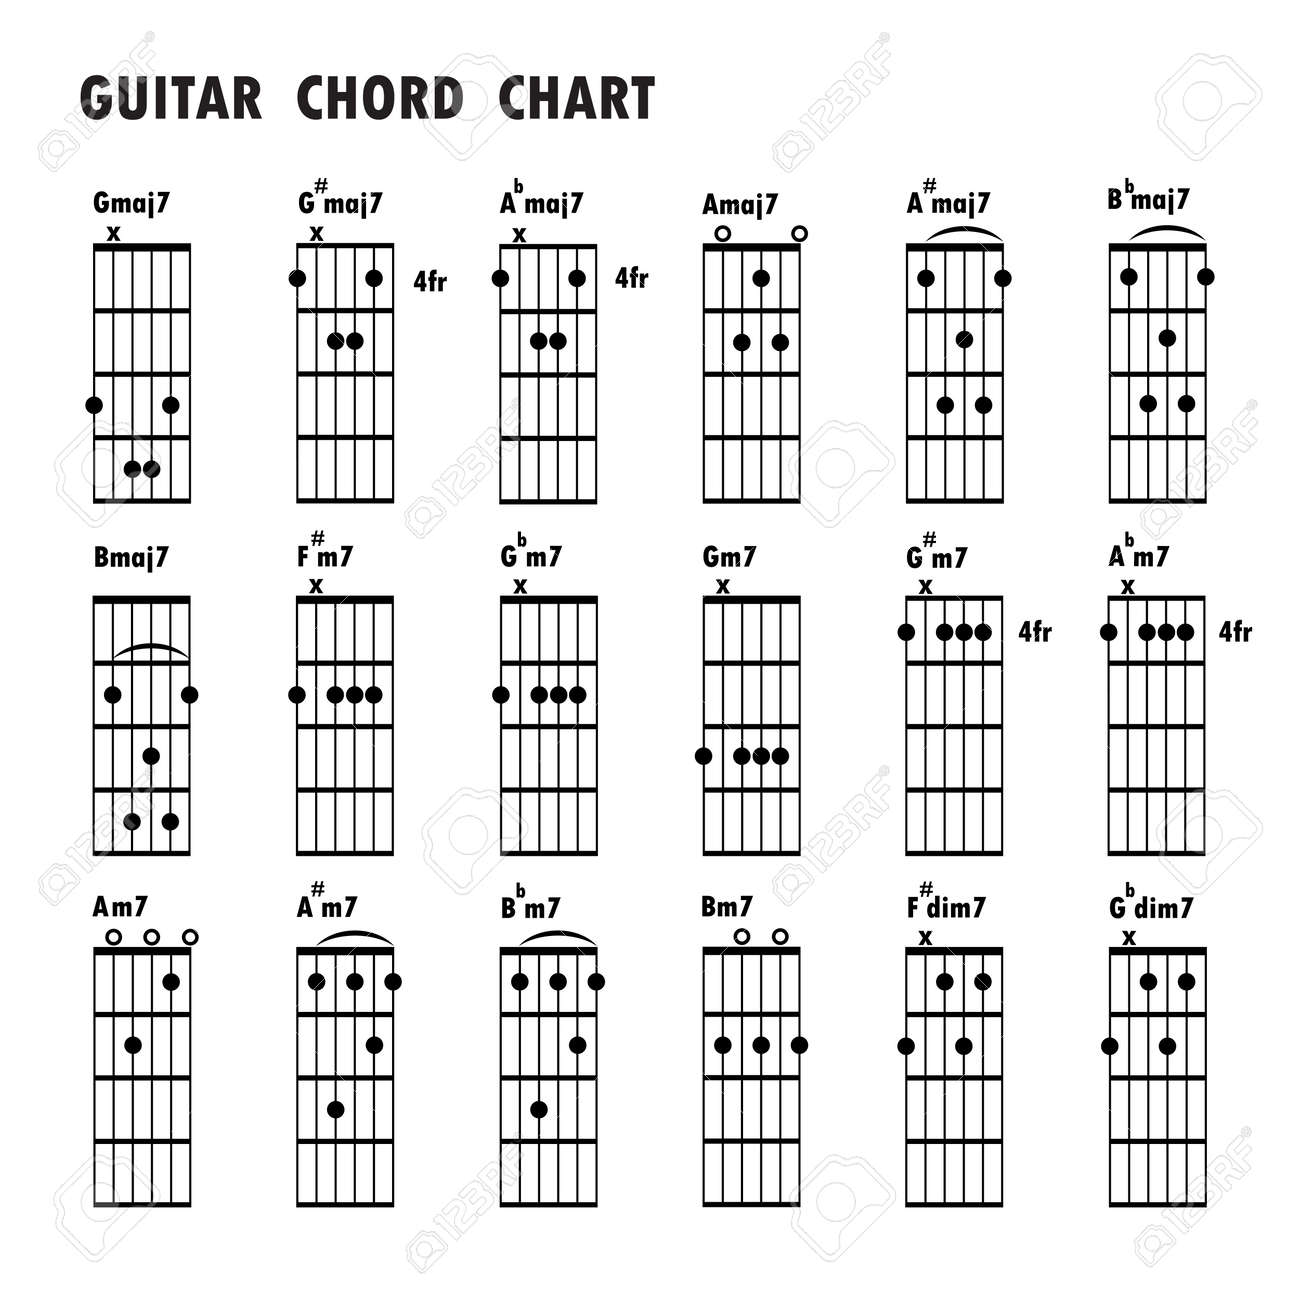 Amaj7 chord guitar images guitar chords examples maj7 chords guitar gallery guitar chords examples set of music notes abstract musical background basic guitar hexwebz Images